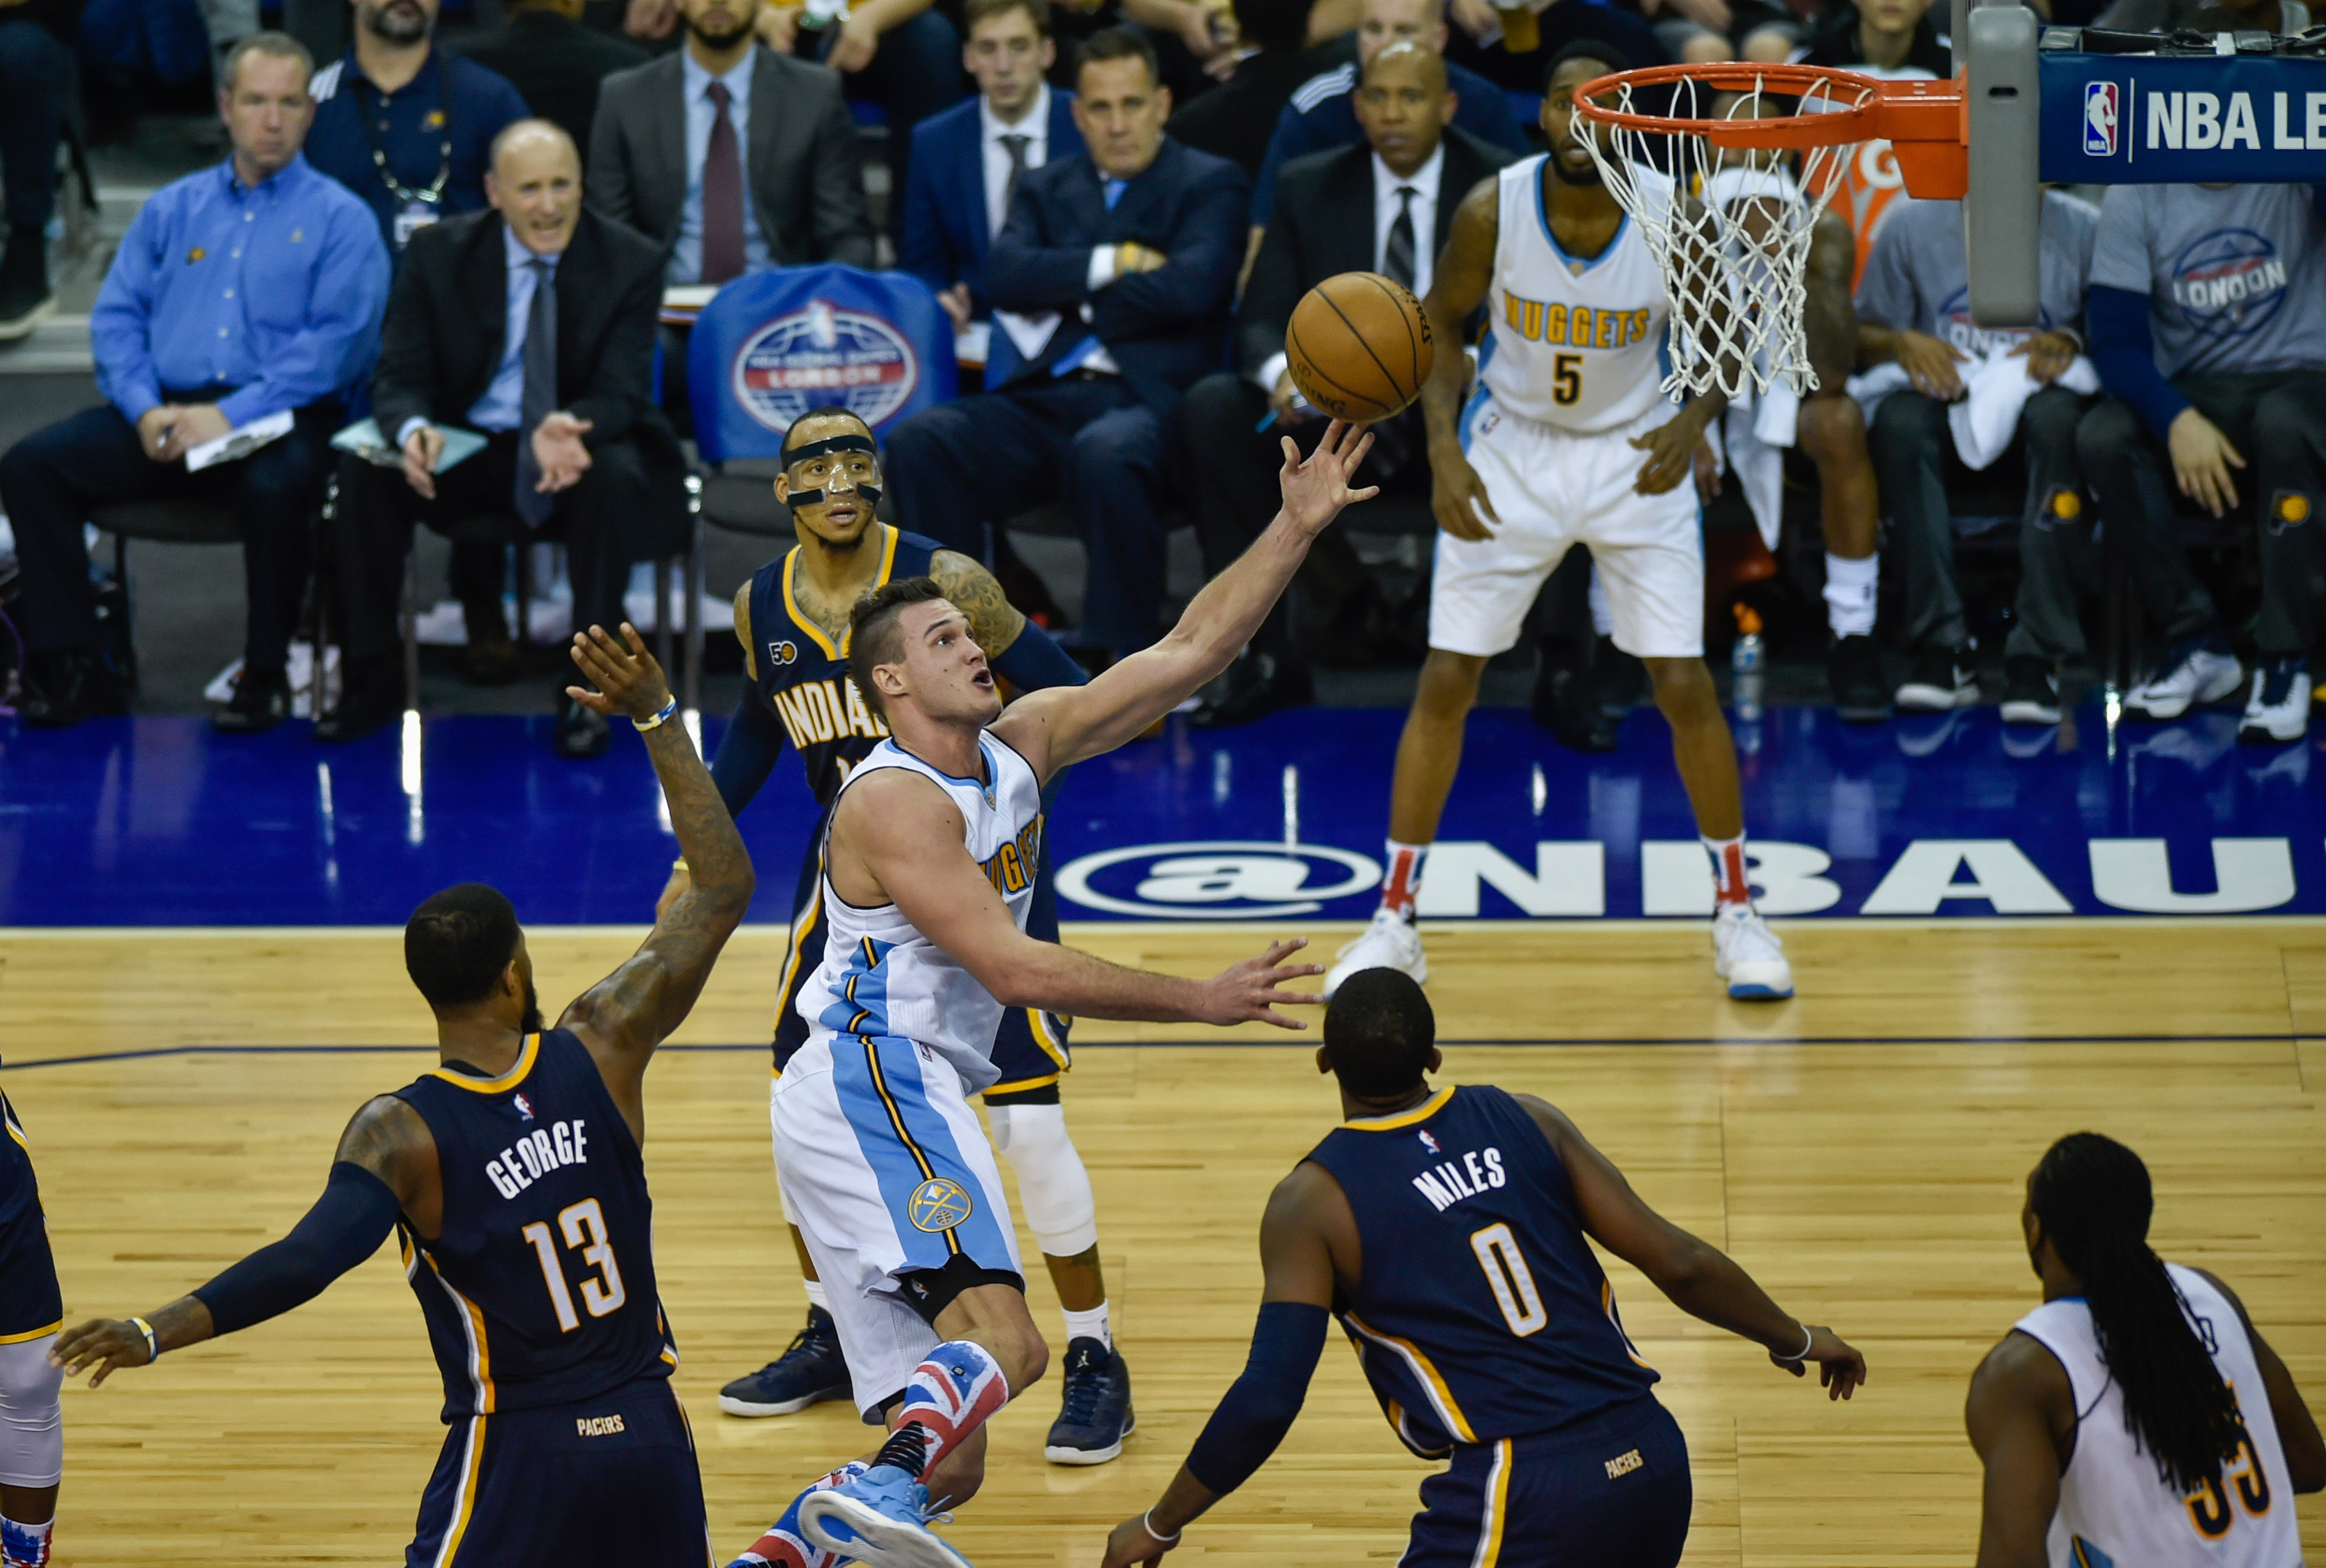 Jokic Leads The Way As Nuggets Defeat Pacers